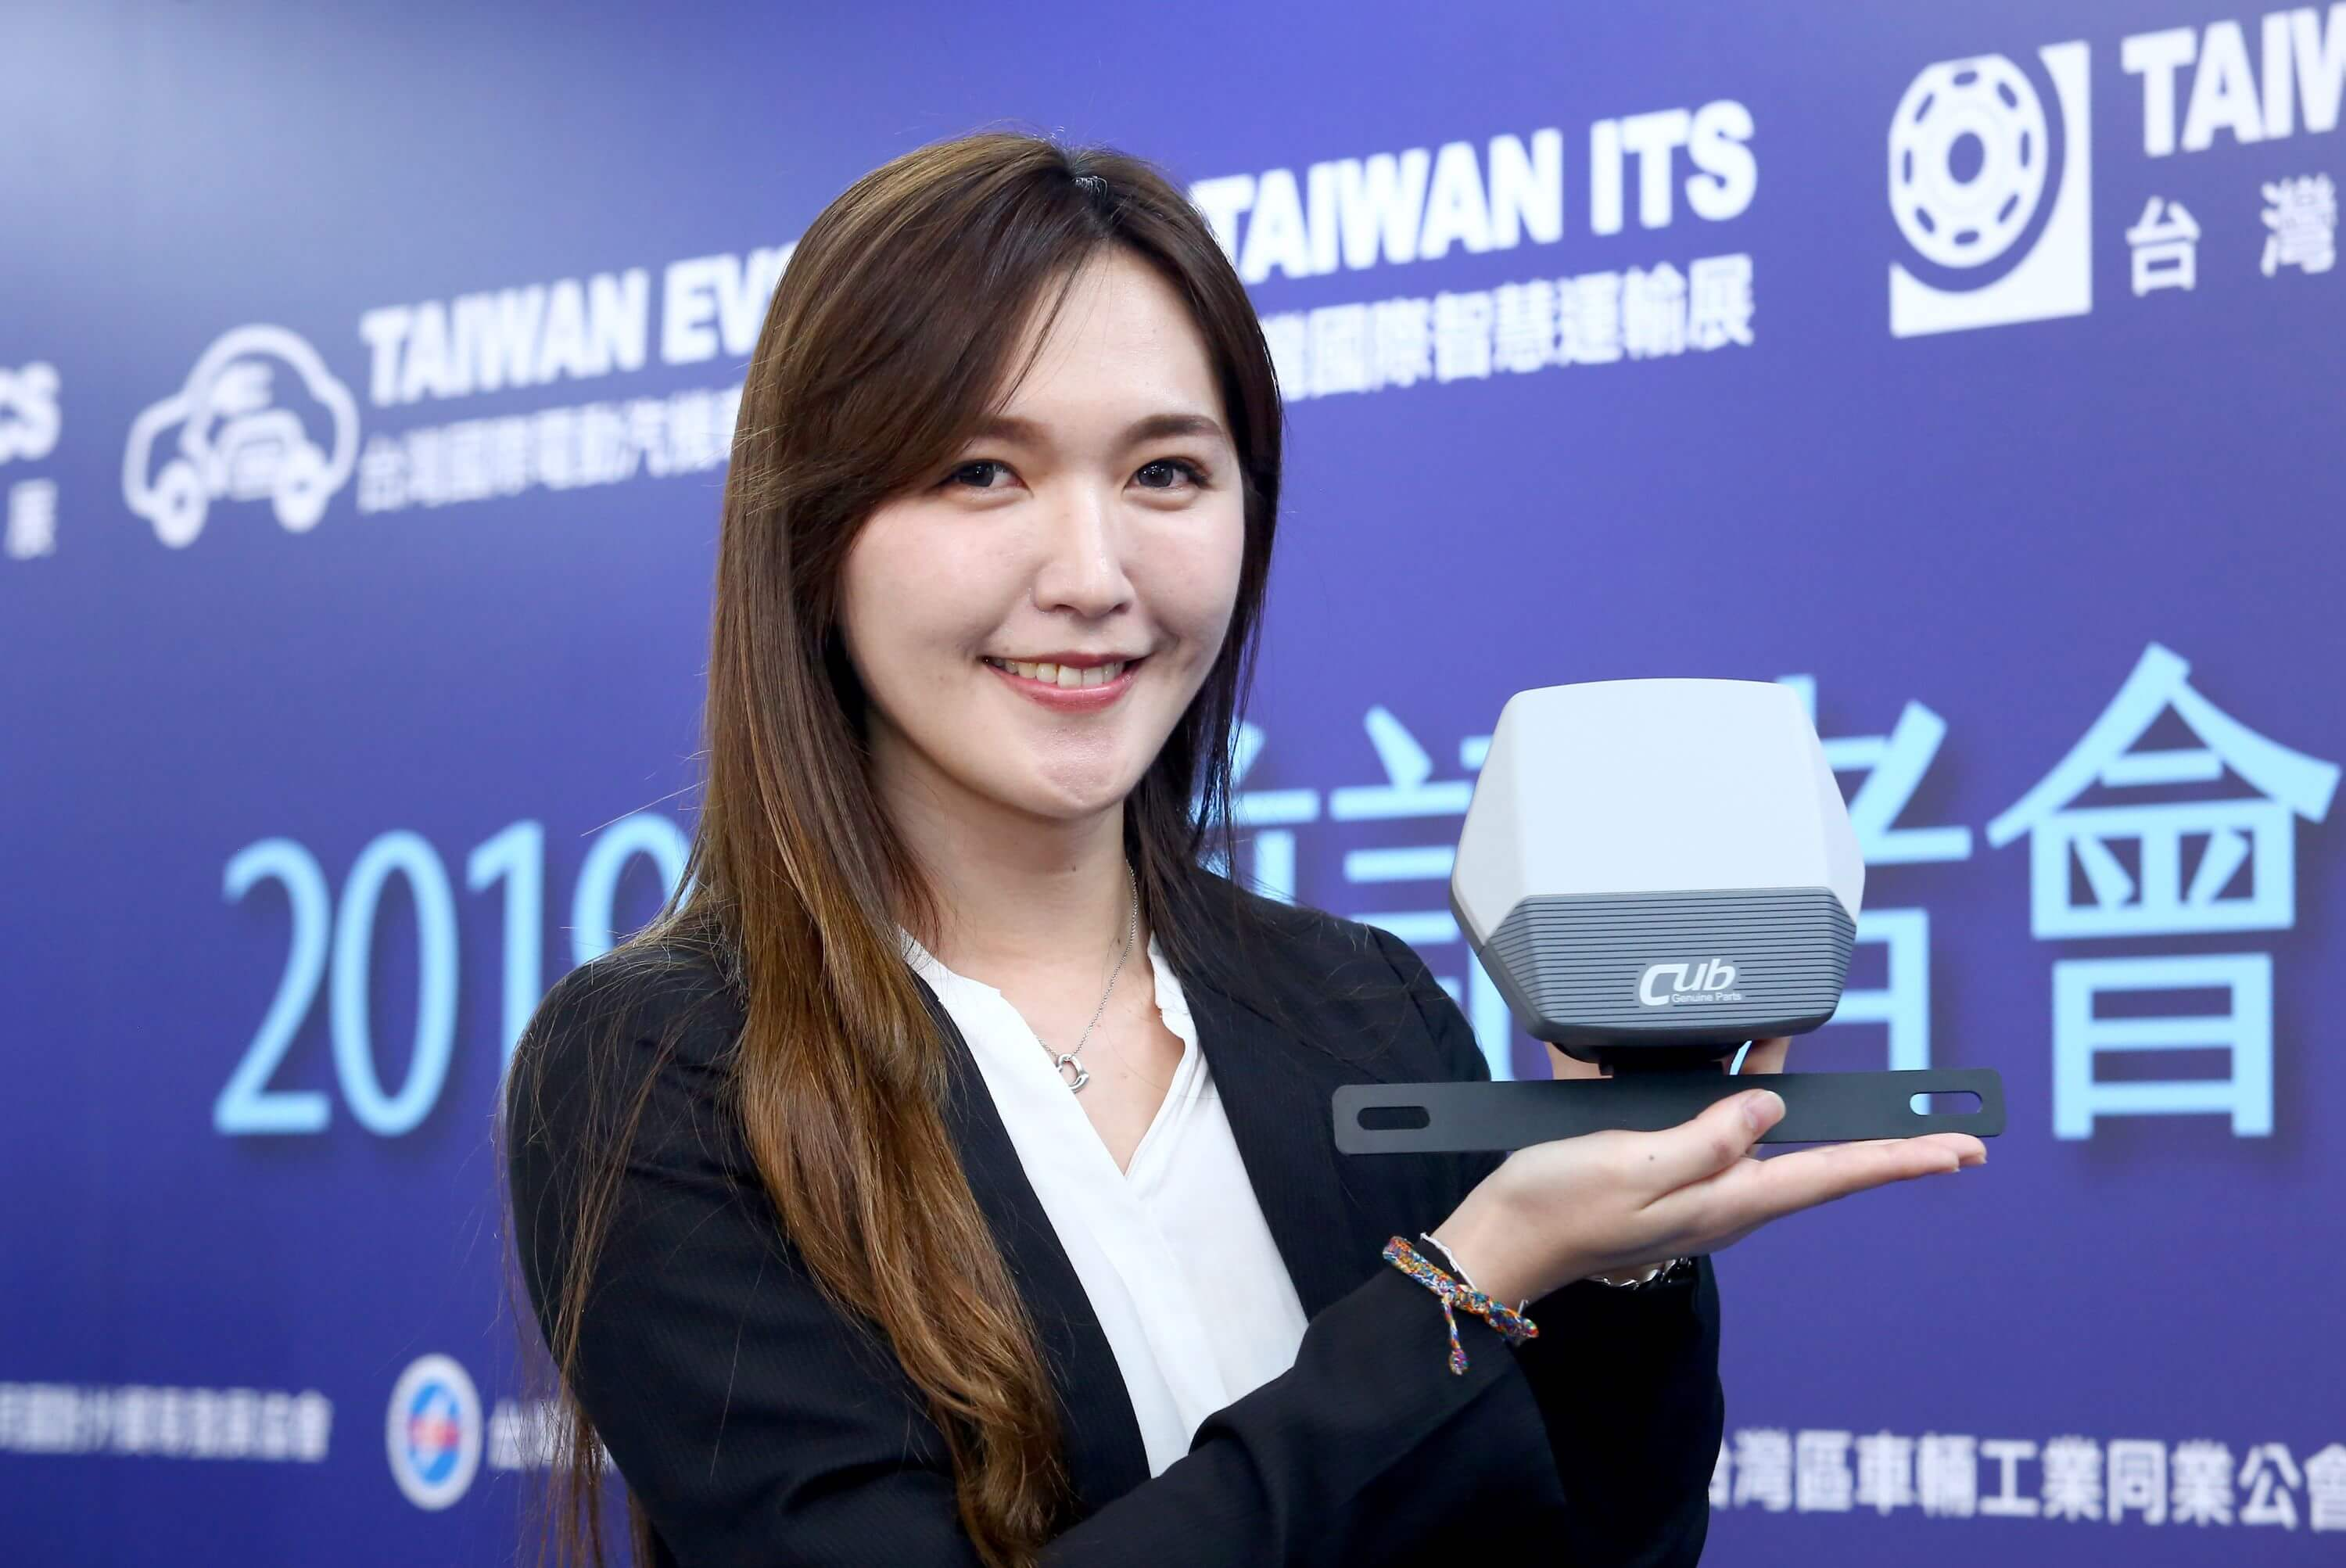 https://storage.googleapis.com/www.taiwantradeshow.com.tw/model/photo/AP/2019/PH00033885-name.jpg